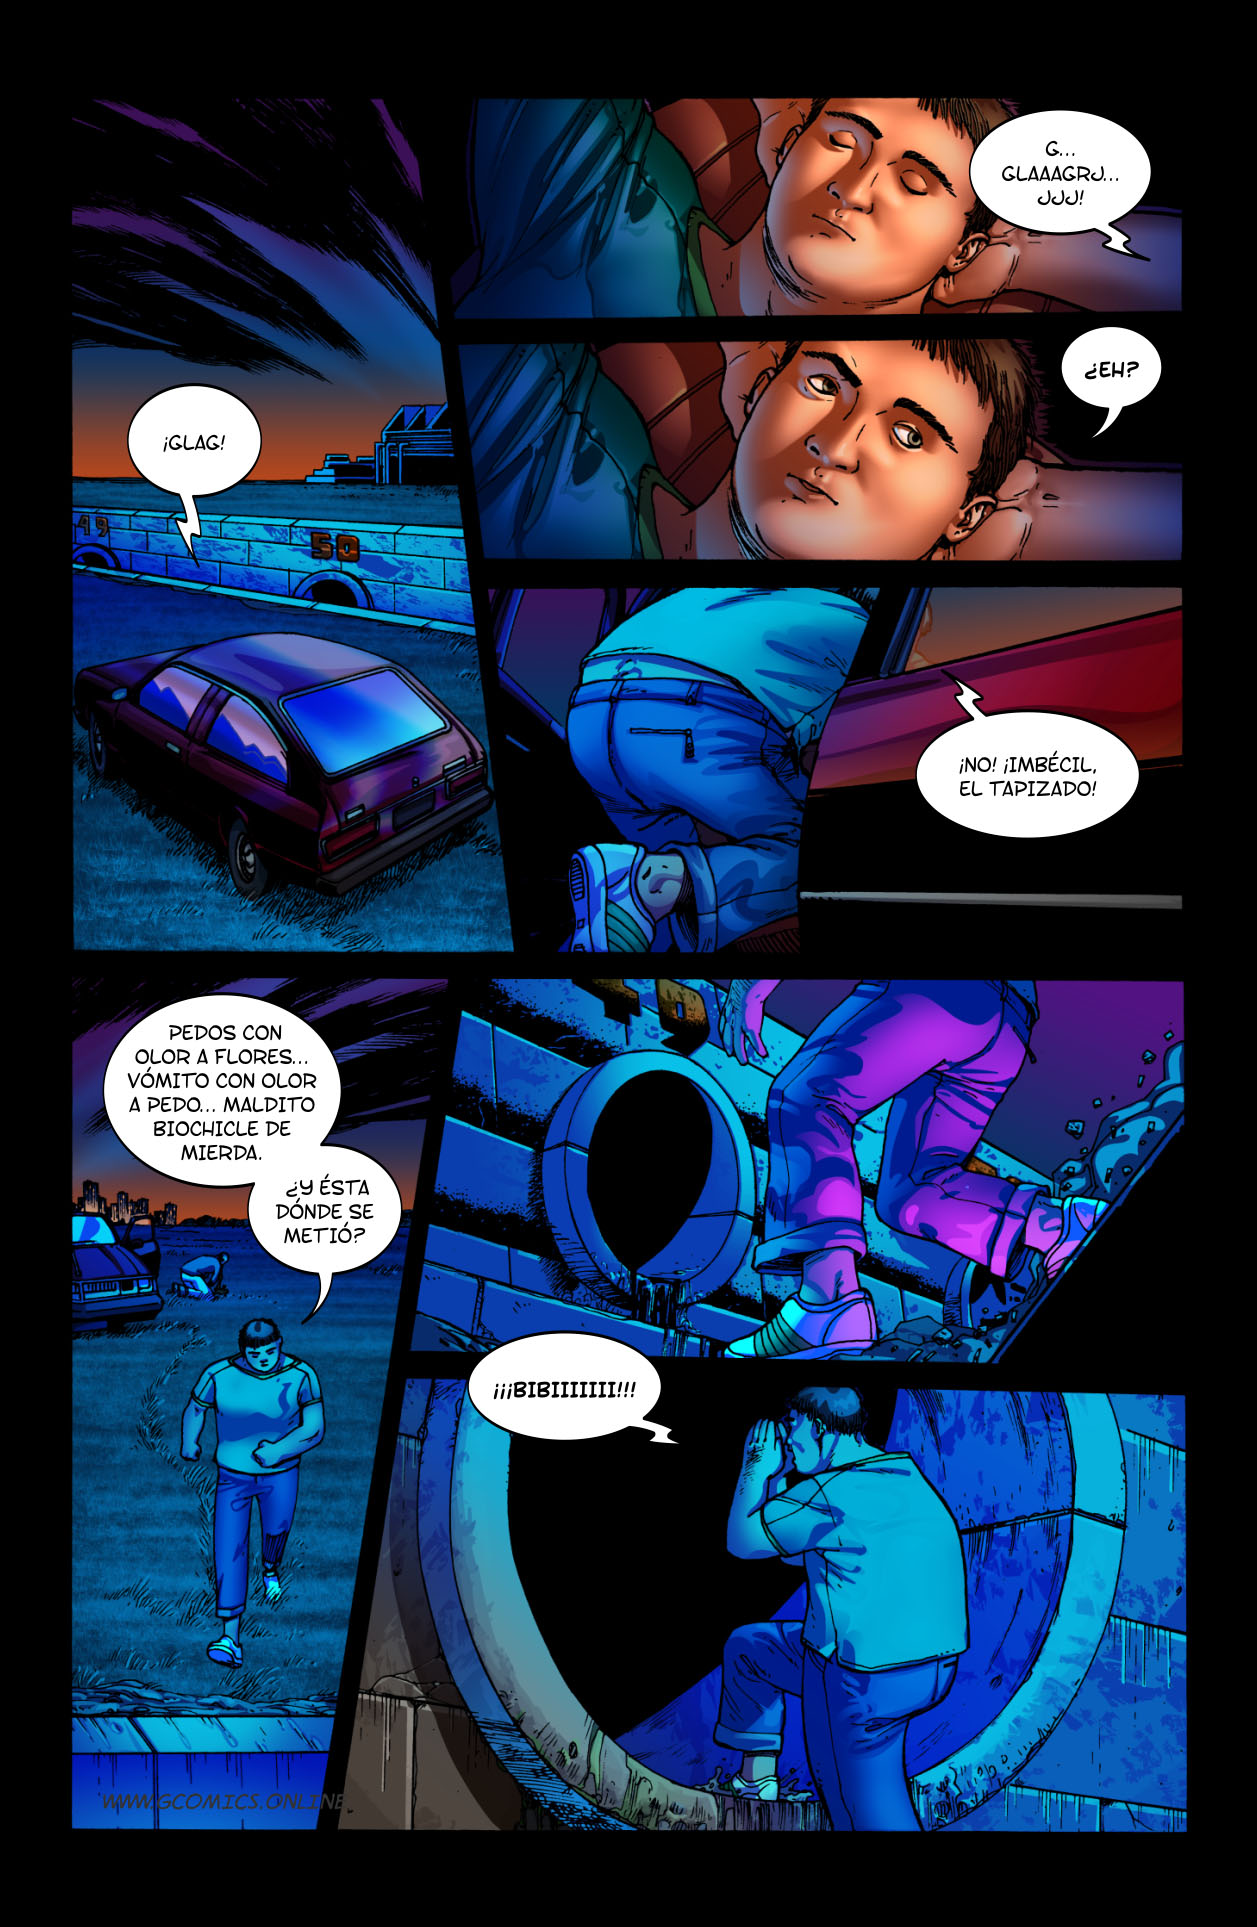 Nodo-issue-01-page-21